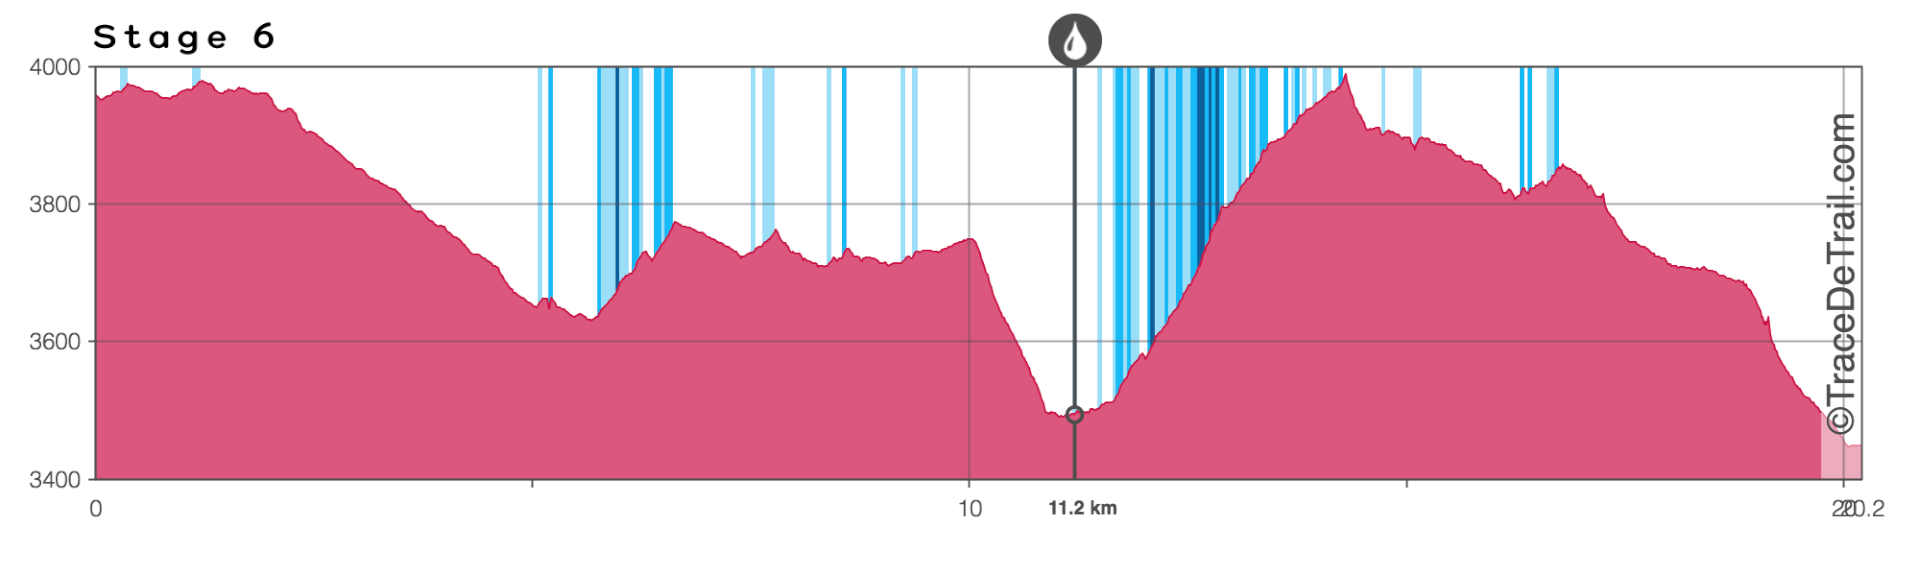 Altitude profile chart Mustang Trail stage 6